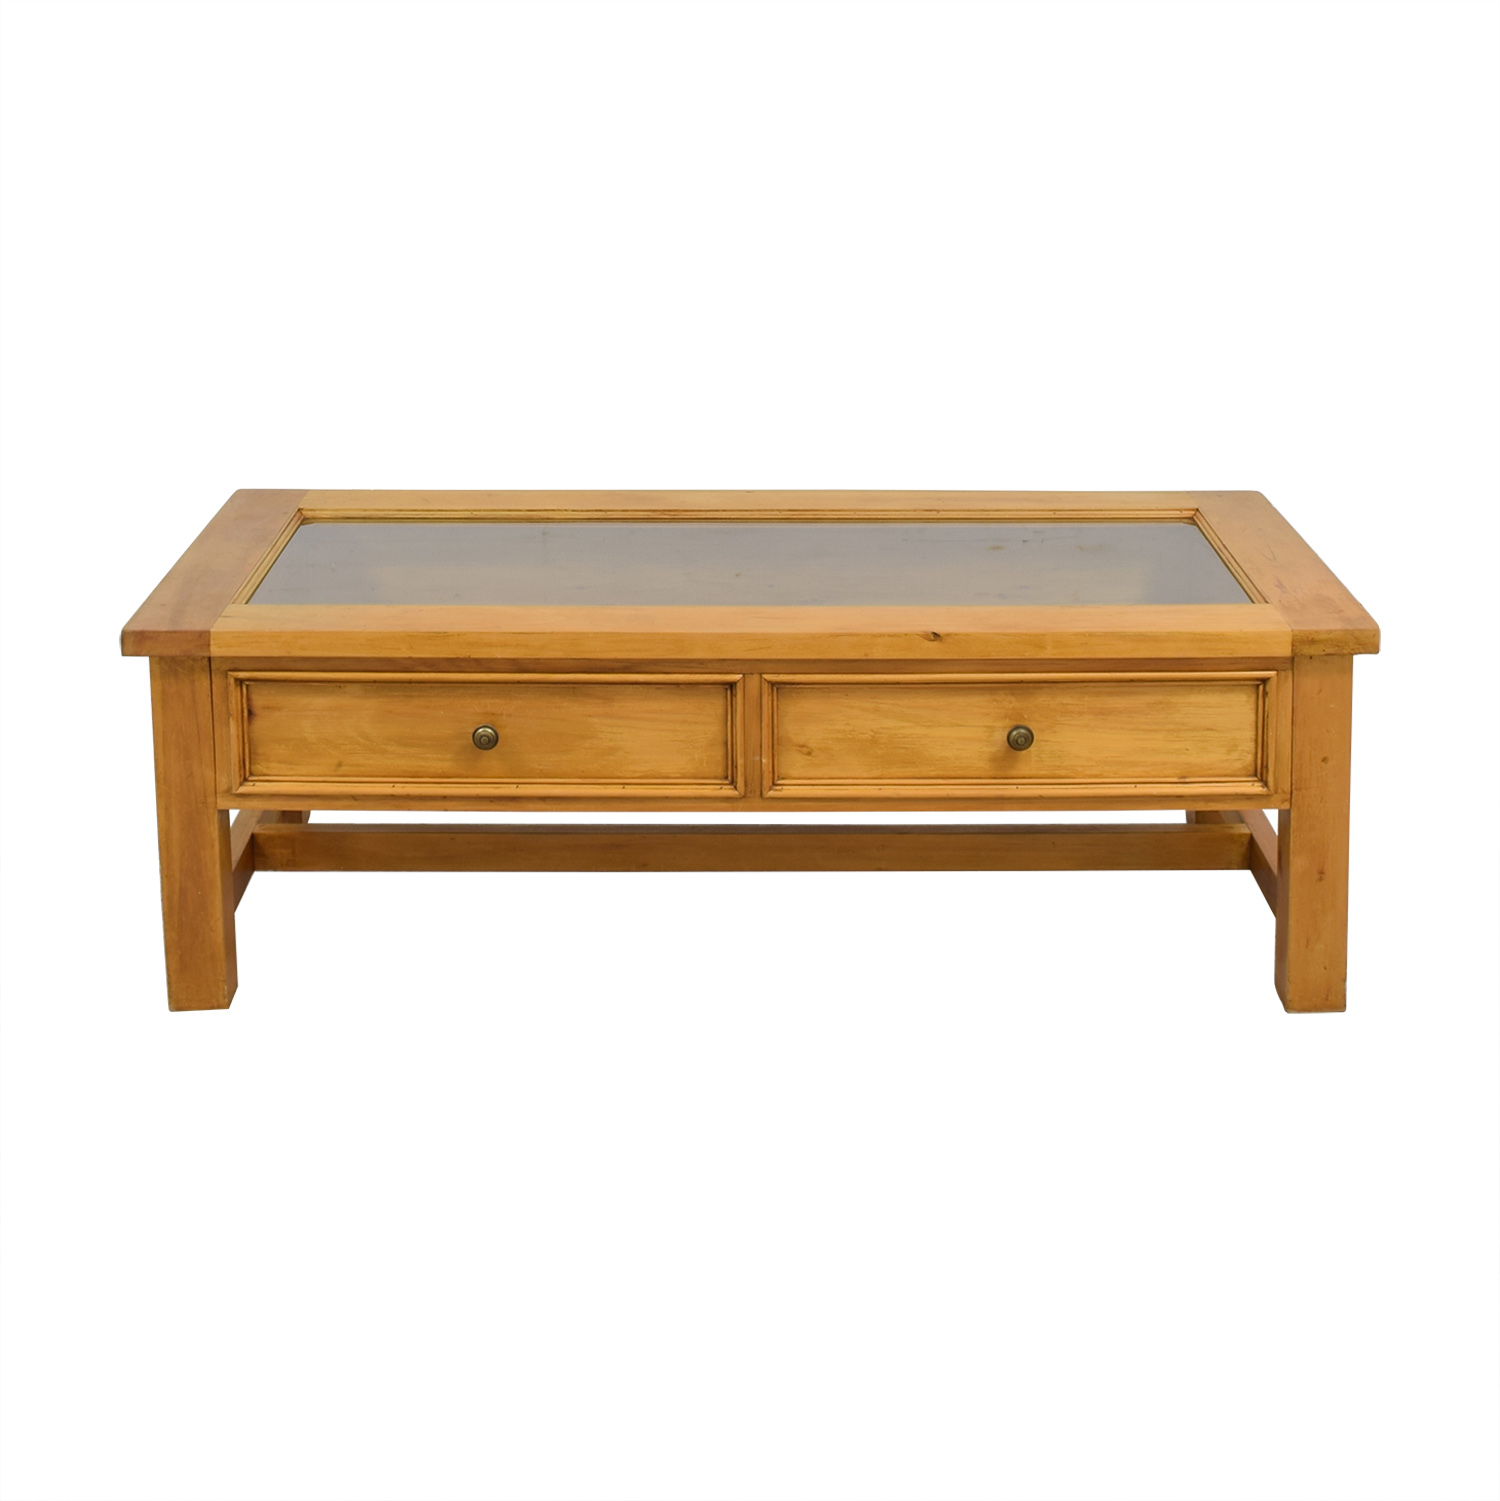 PJ Milligan Storage Coffee Table